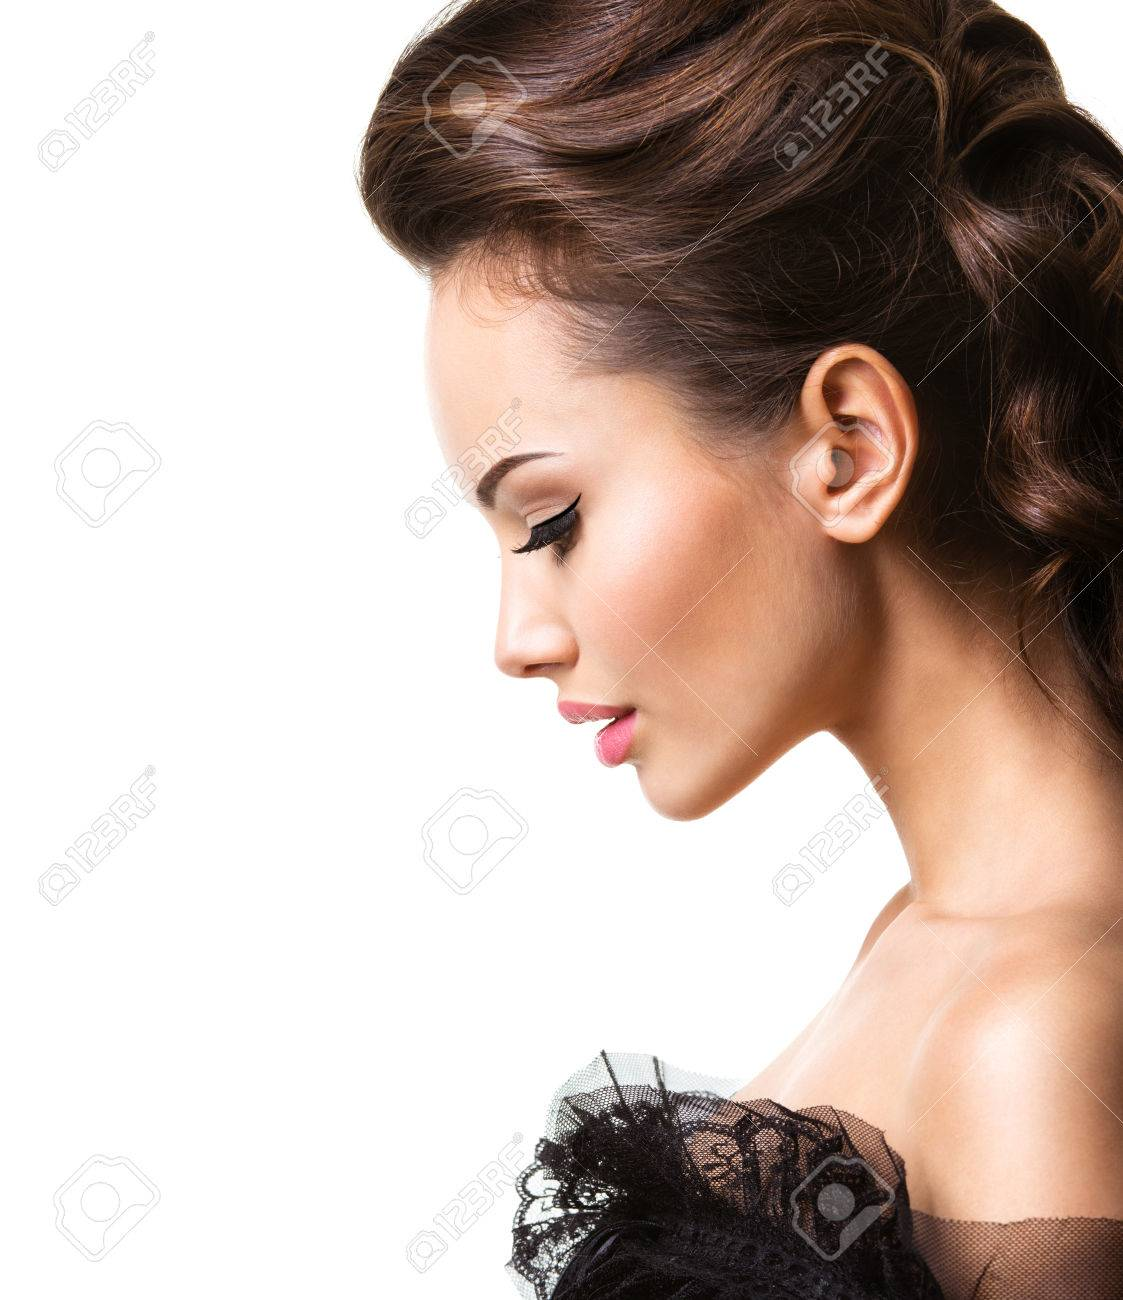 33a7f23ee Beautiful Face Of An Young Sexy Woman In Black Dress Posing At ...